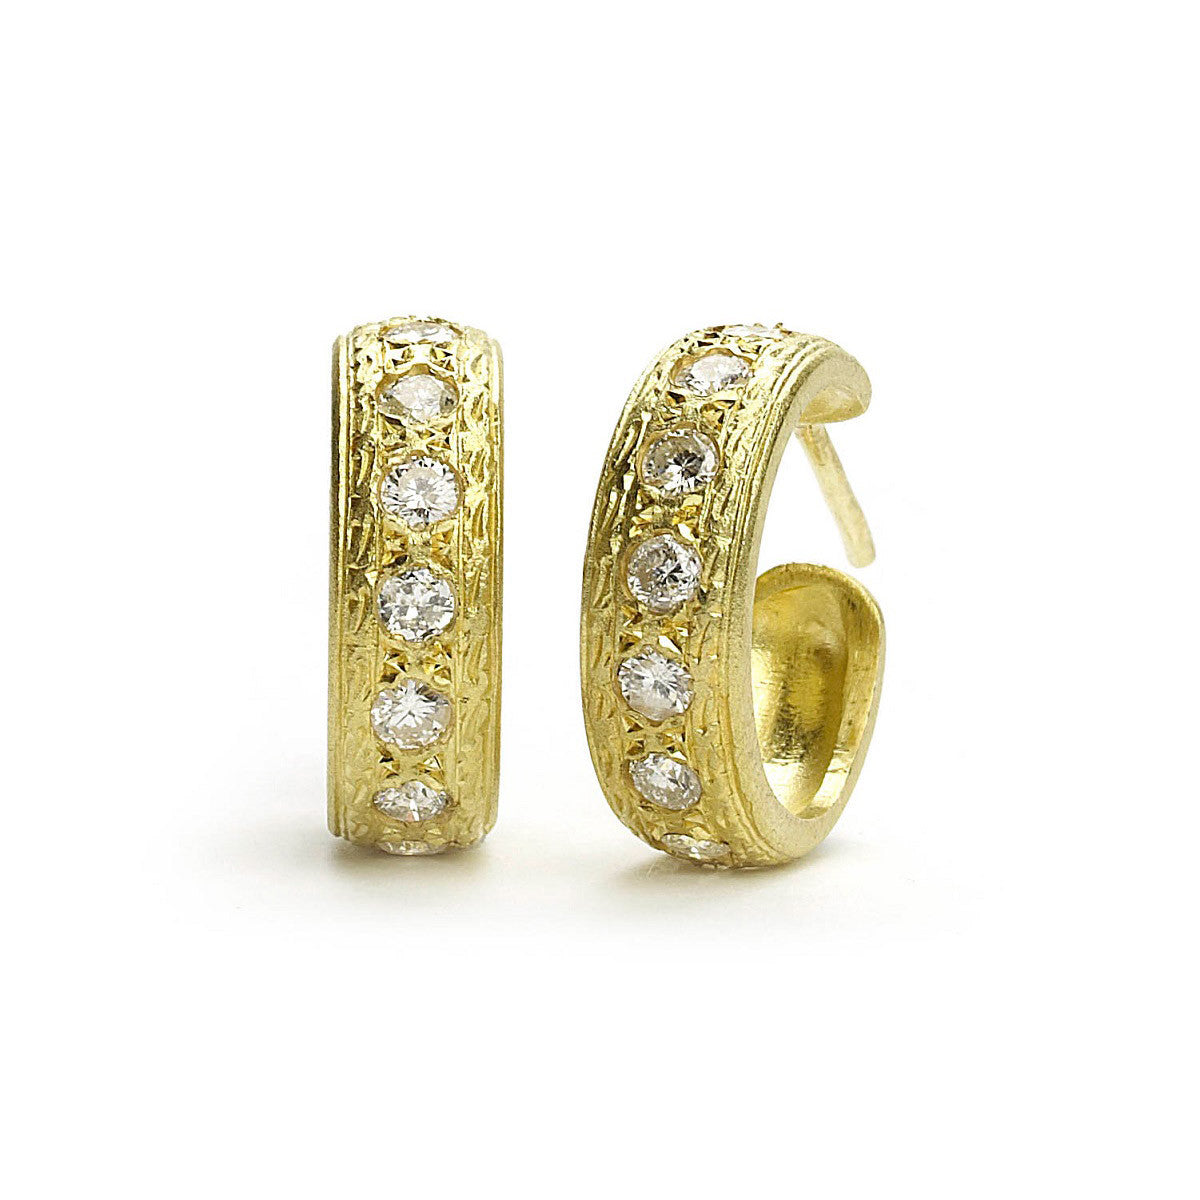 Yellow gold hoop earrings set with round cut diamonds with engraved border details